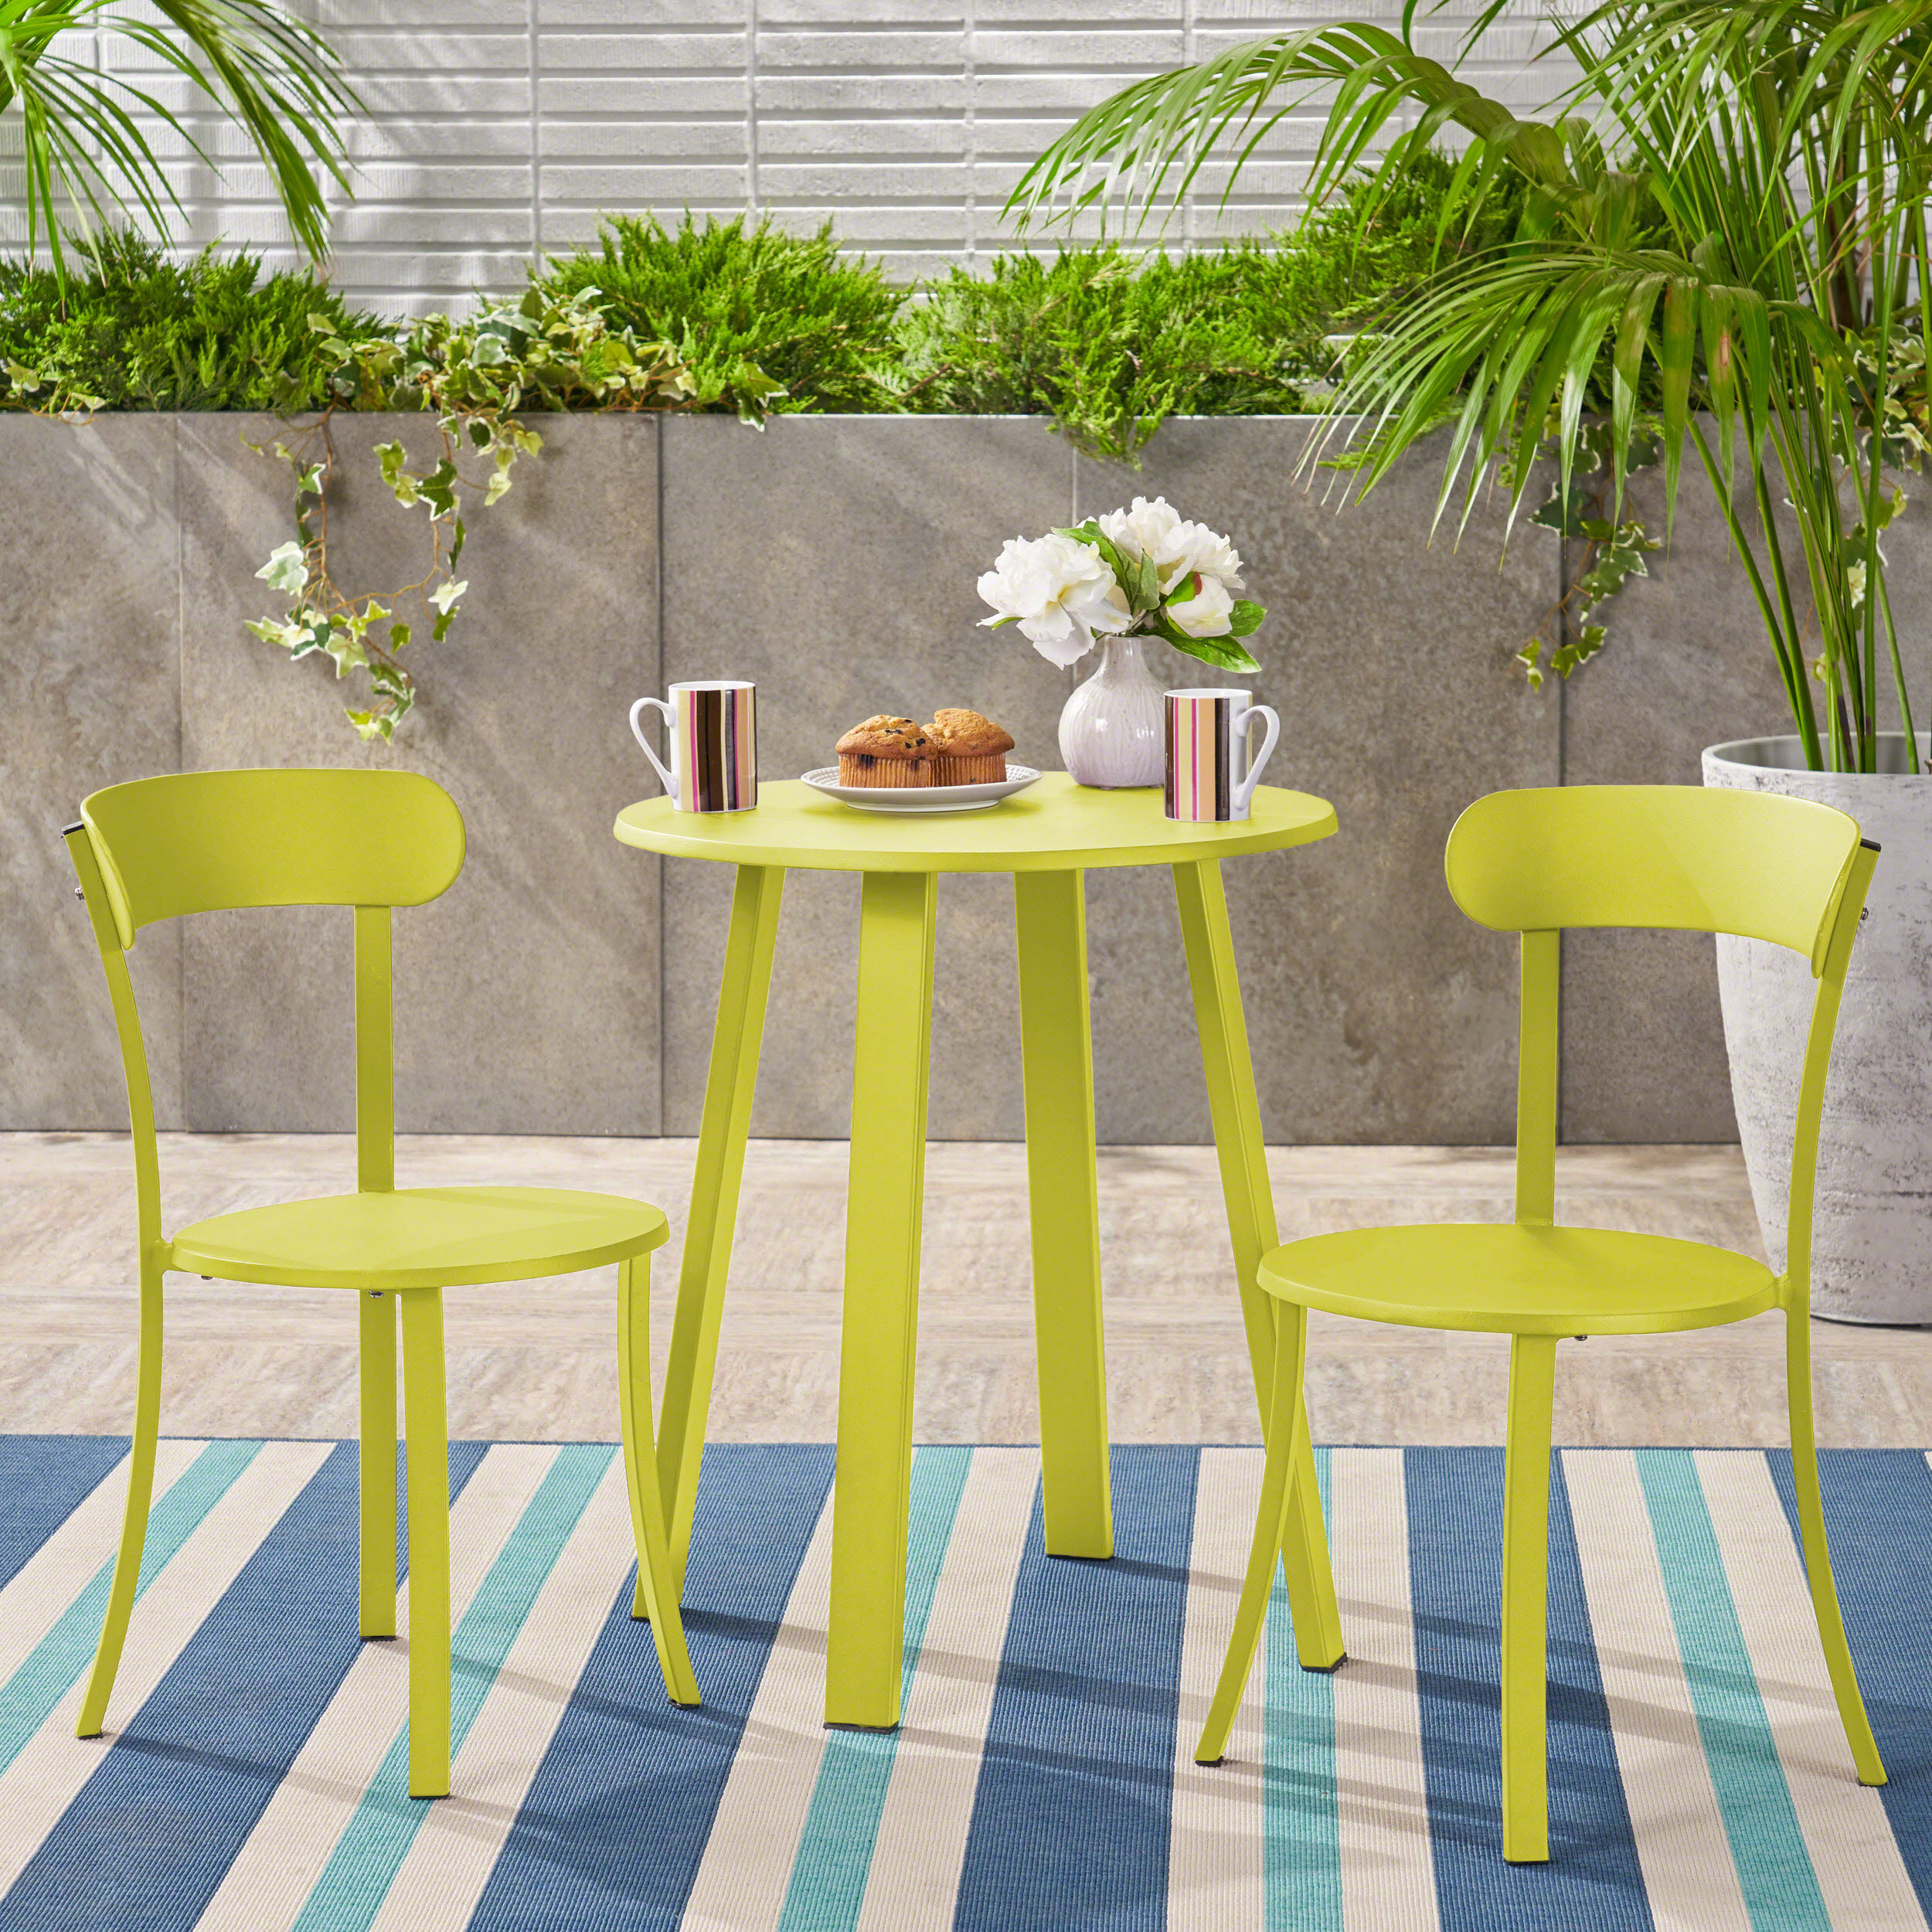 bright yellow table and chairs set